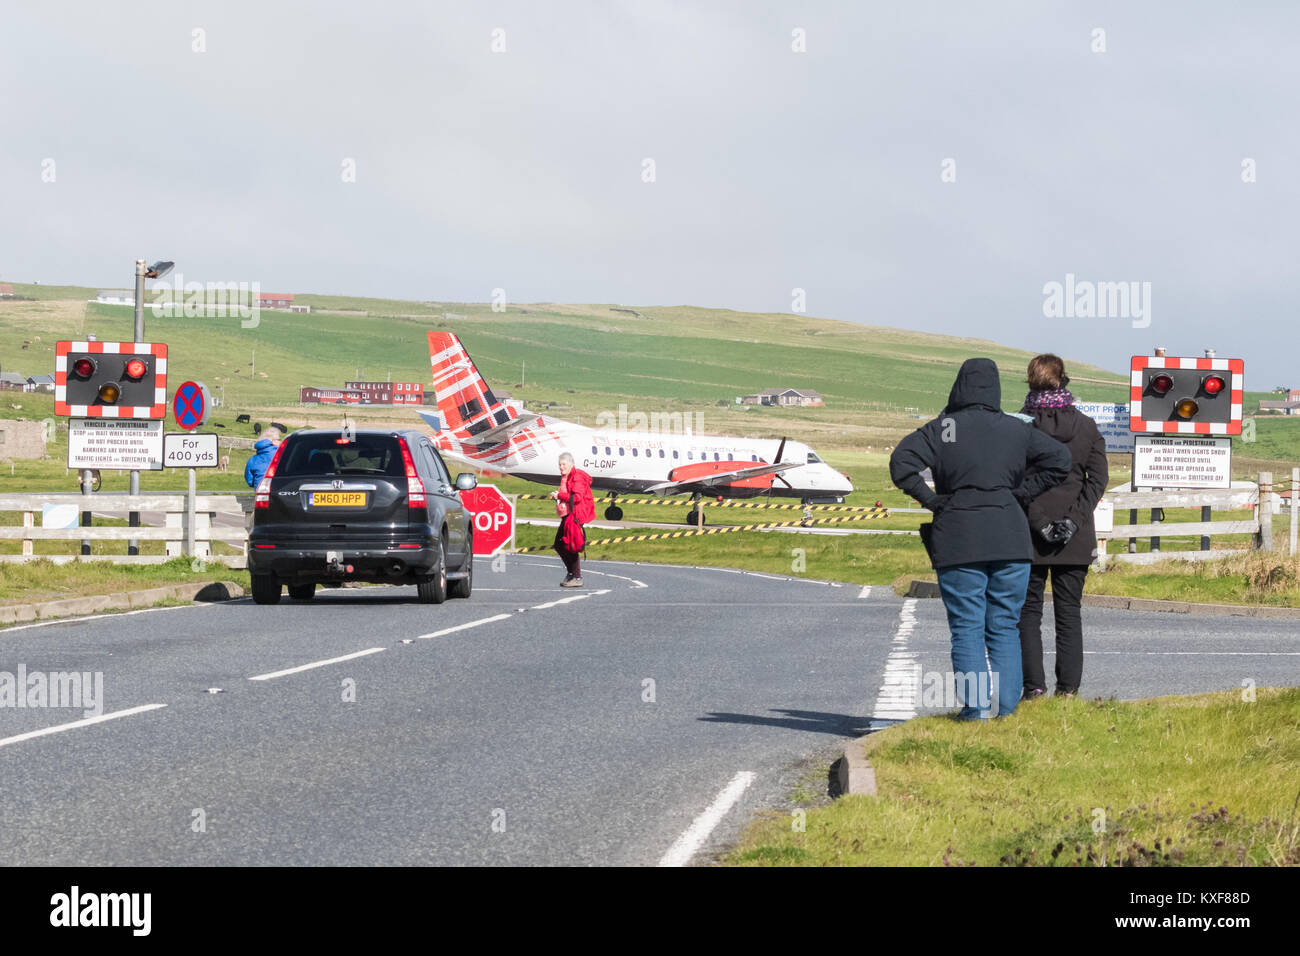 Sumburgh Airport, Shetland Islands, Scotland, UK - road crossing closed to allow Loganair flight to land, watched - Stock Image